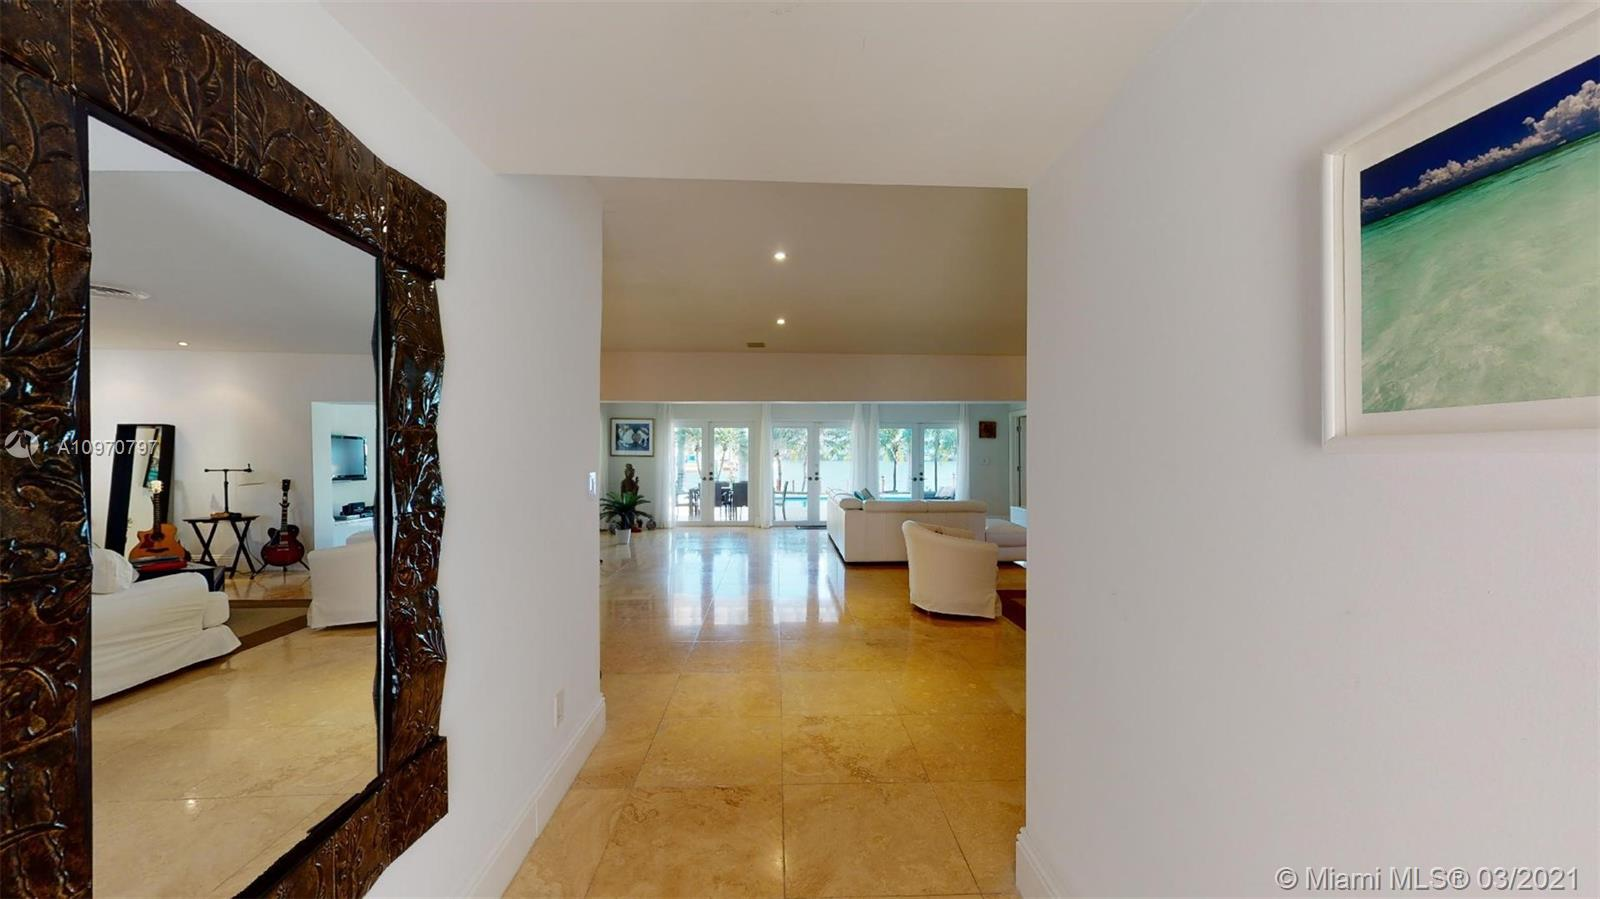 Beach View - 6015 Pine Tree Dr, Miami Beach, FL 33140